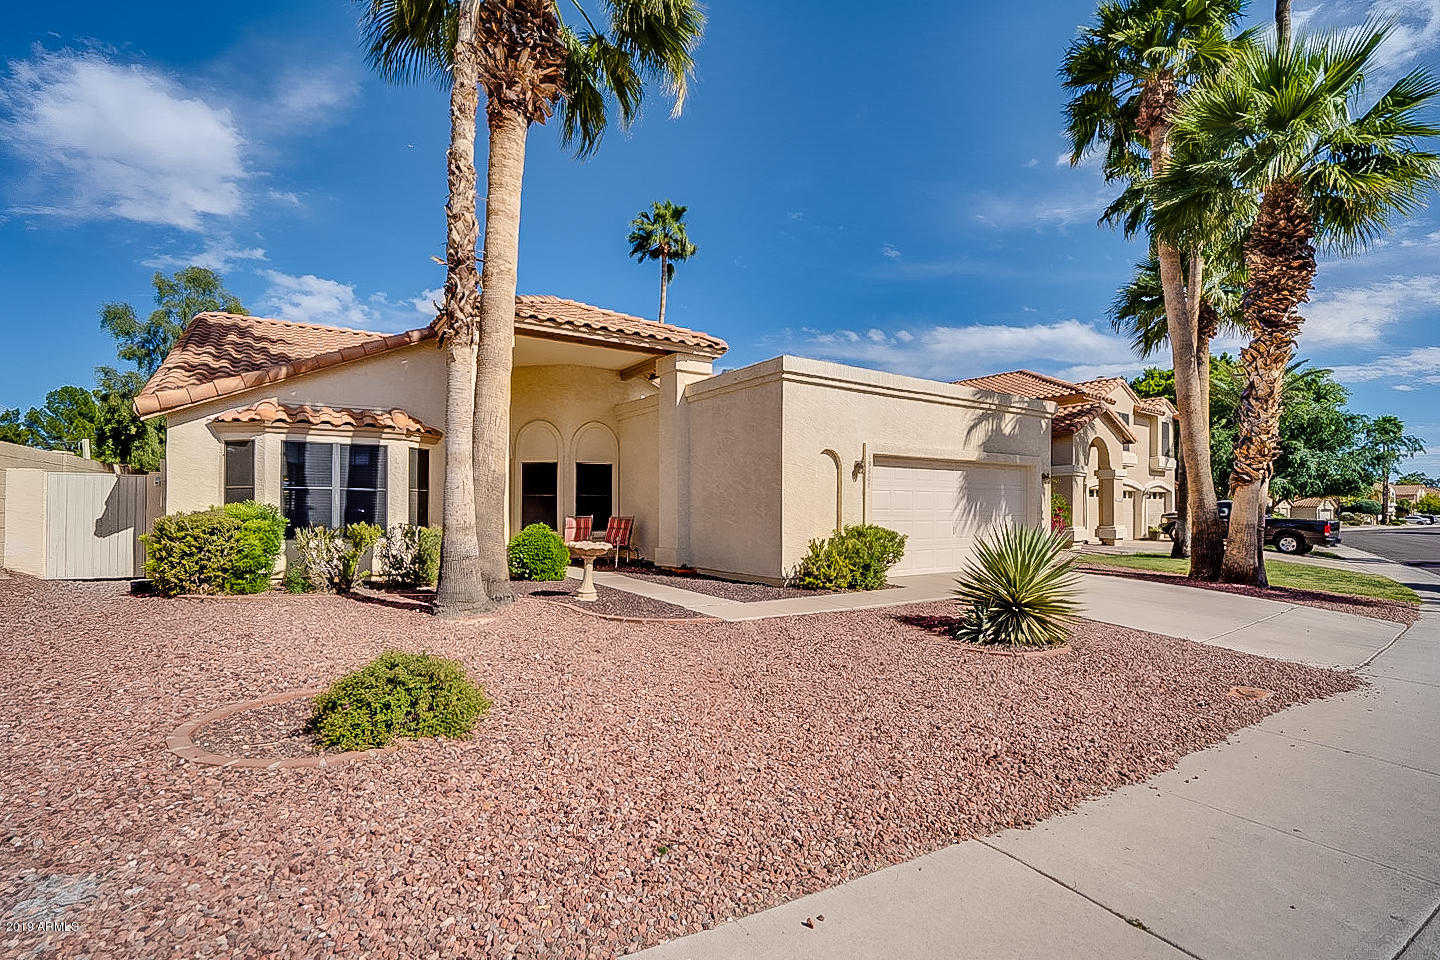 $314,900 - 3Br/2Ba - Home for Sale in Arrowhead By The Lakes Lot 1-203, Glendale